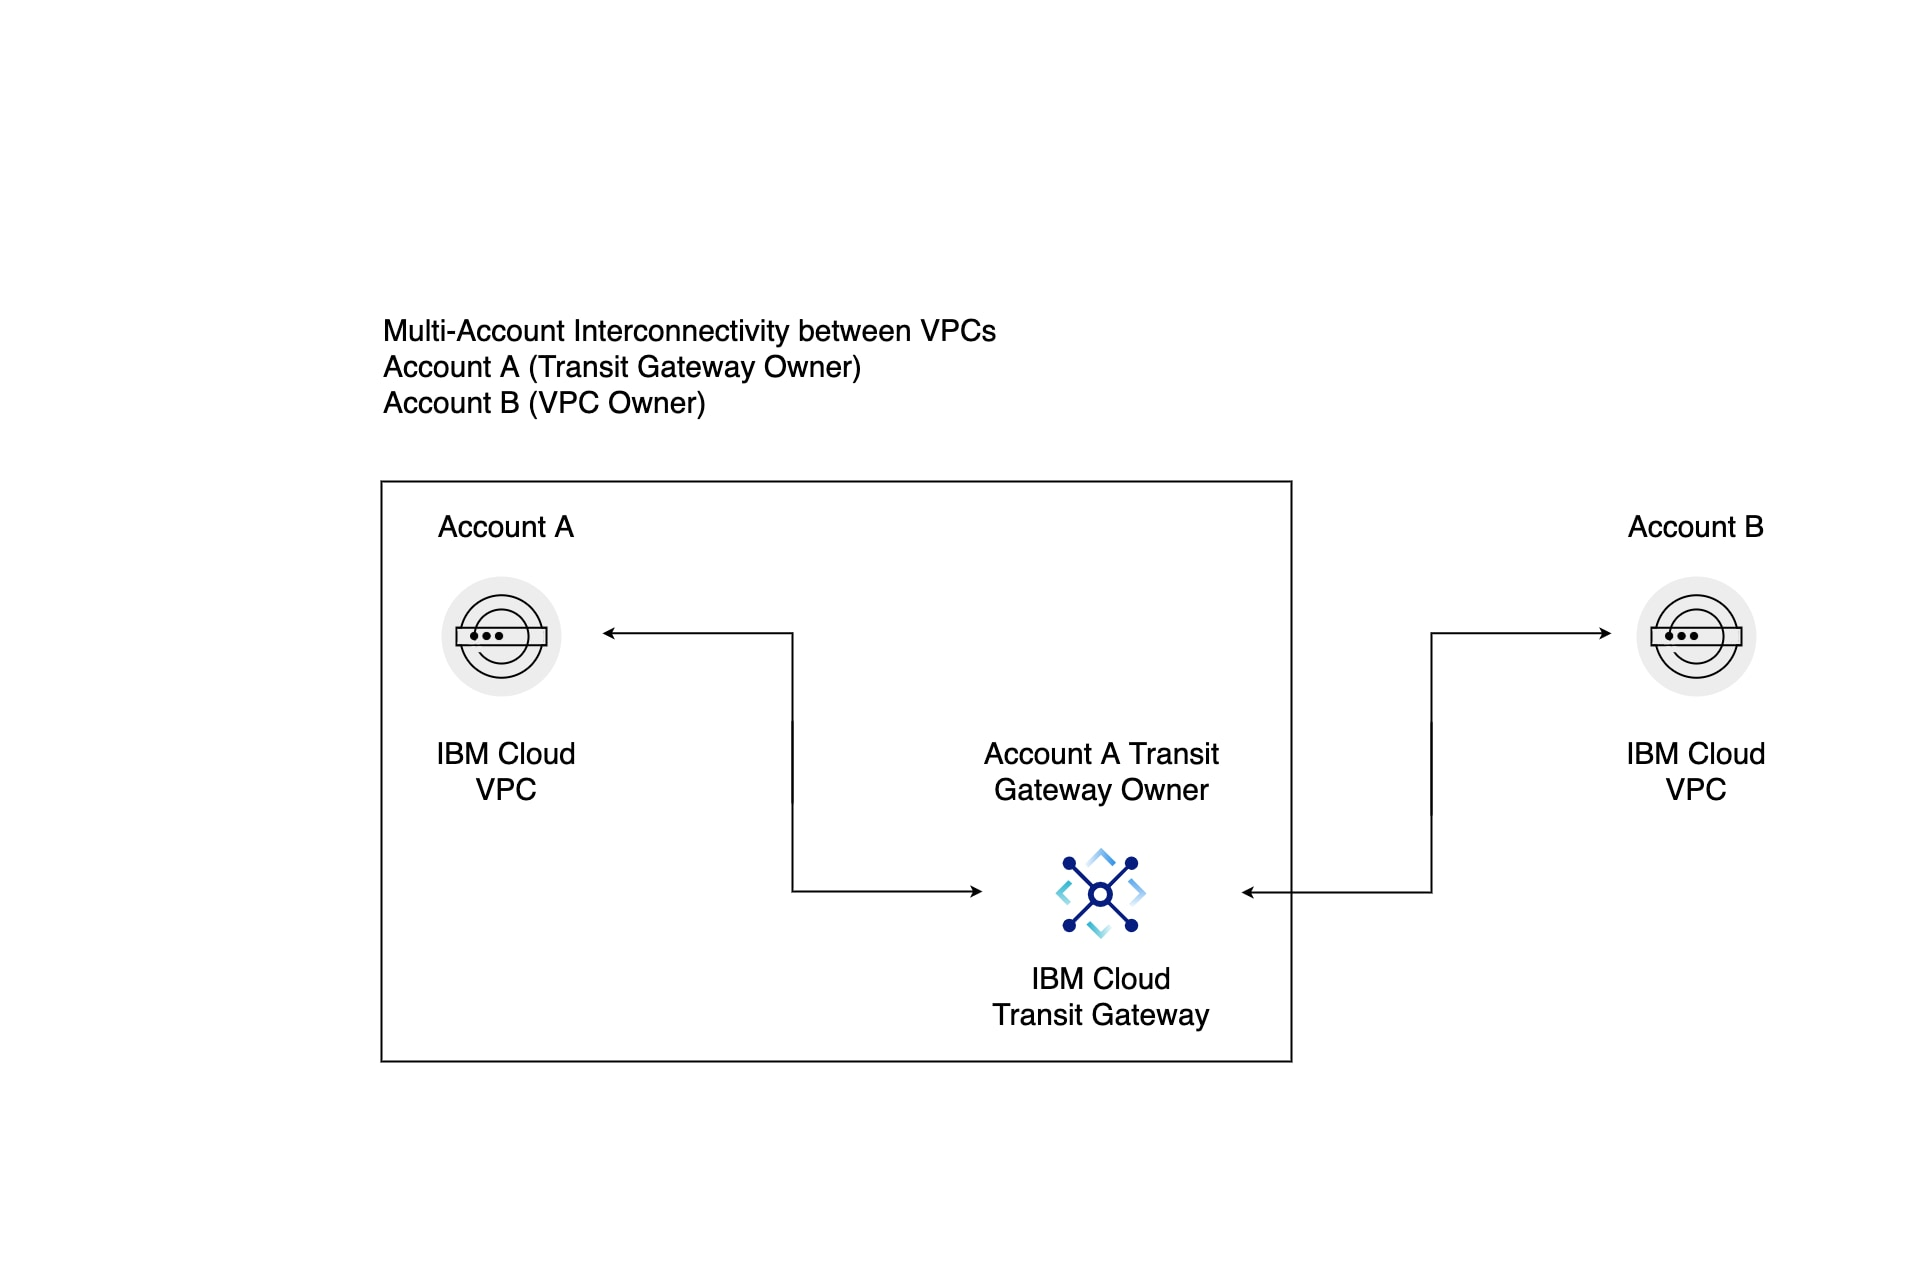 Flowchart of multi-account interconnectivity between VPCs